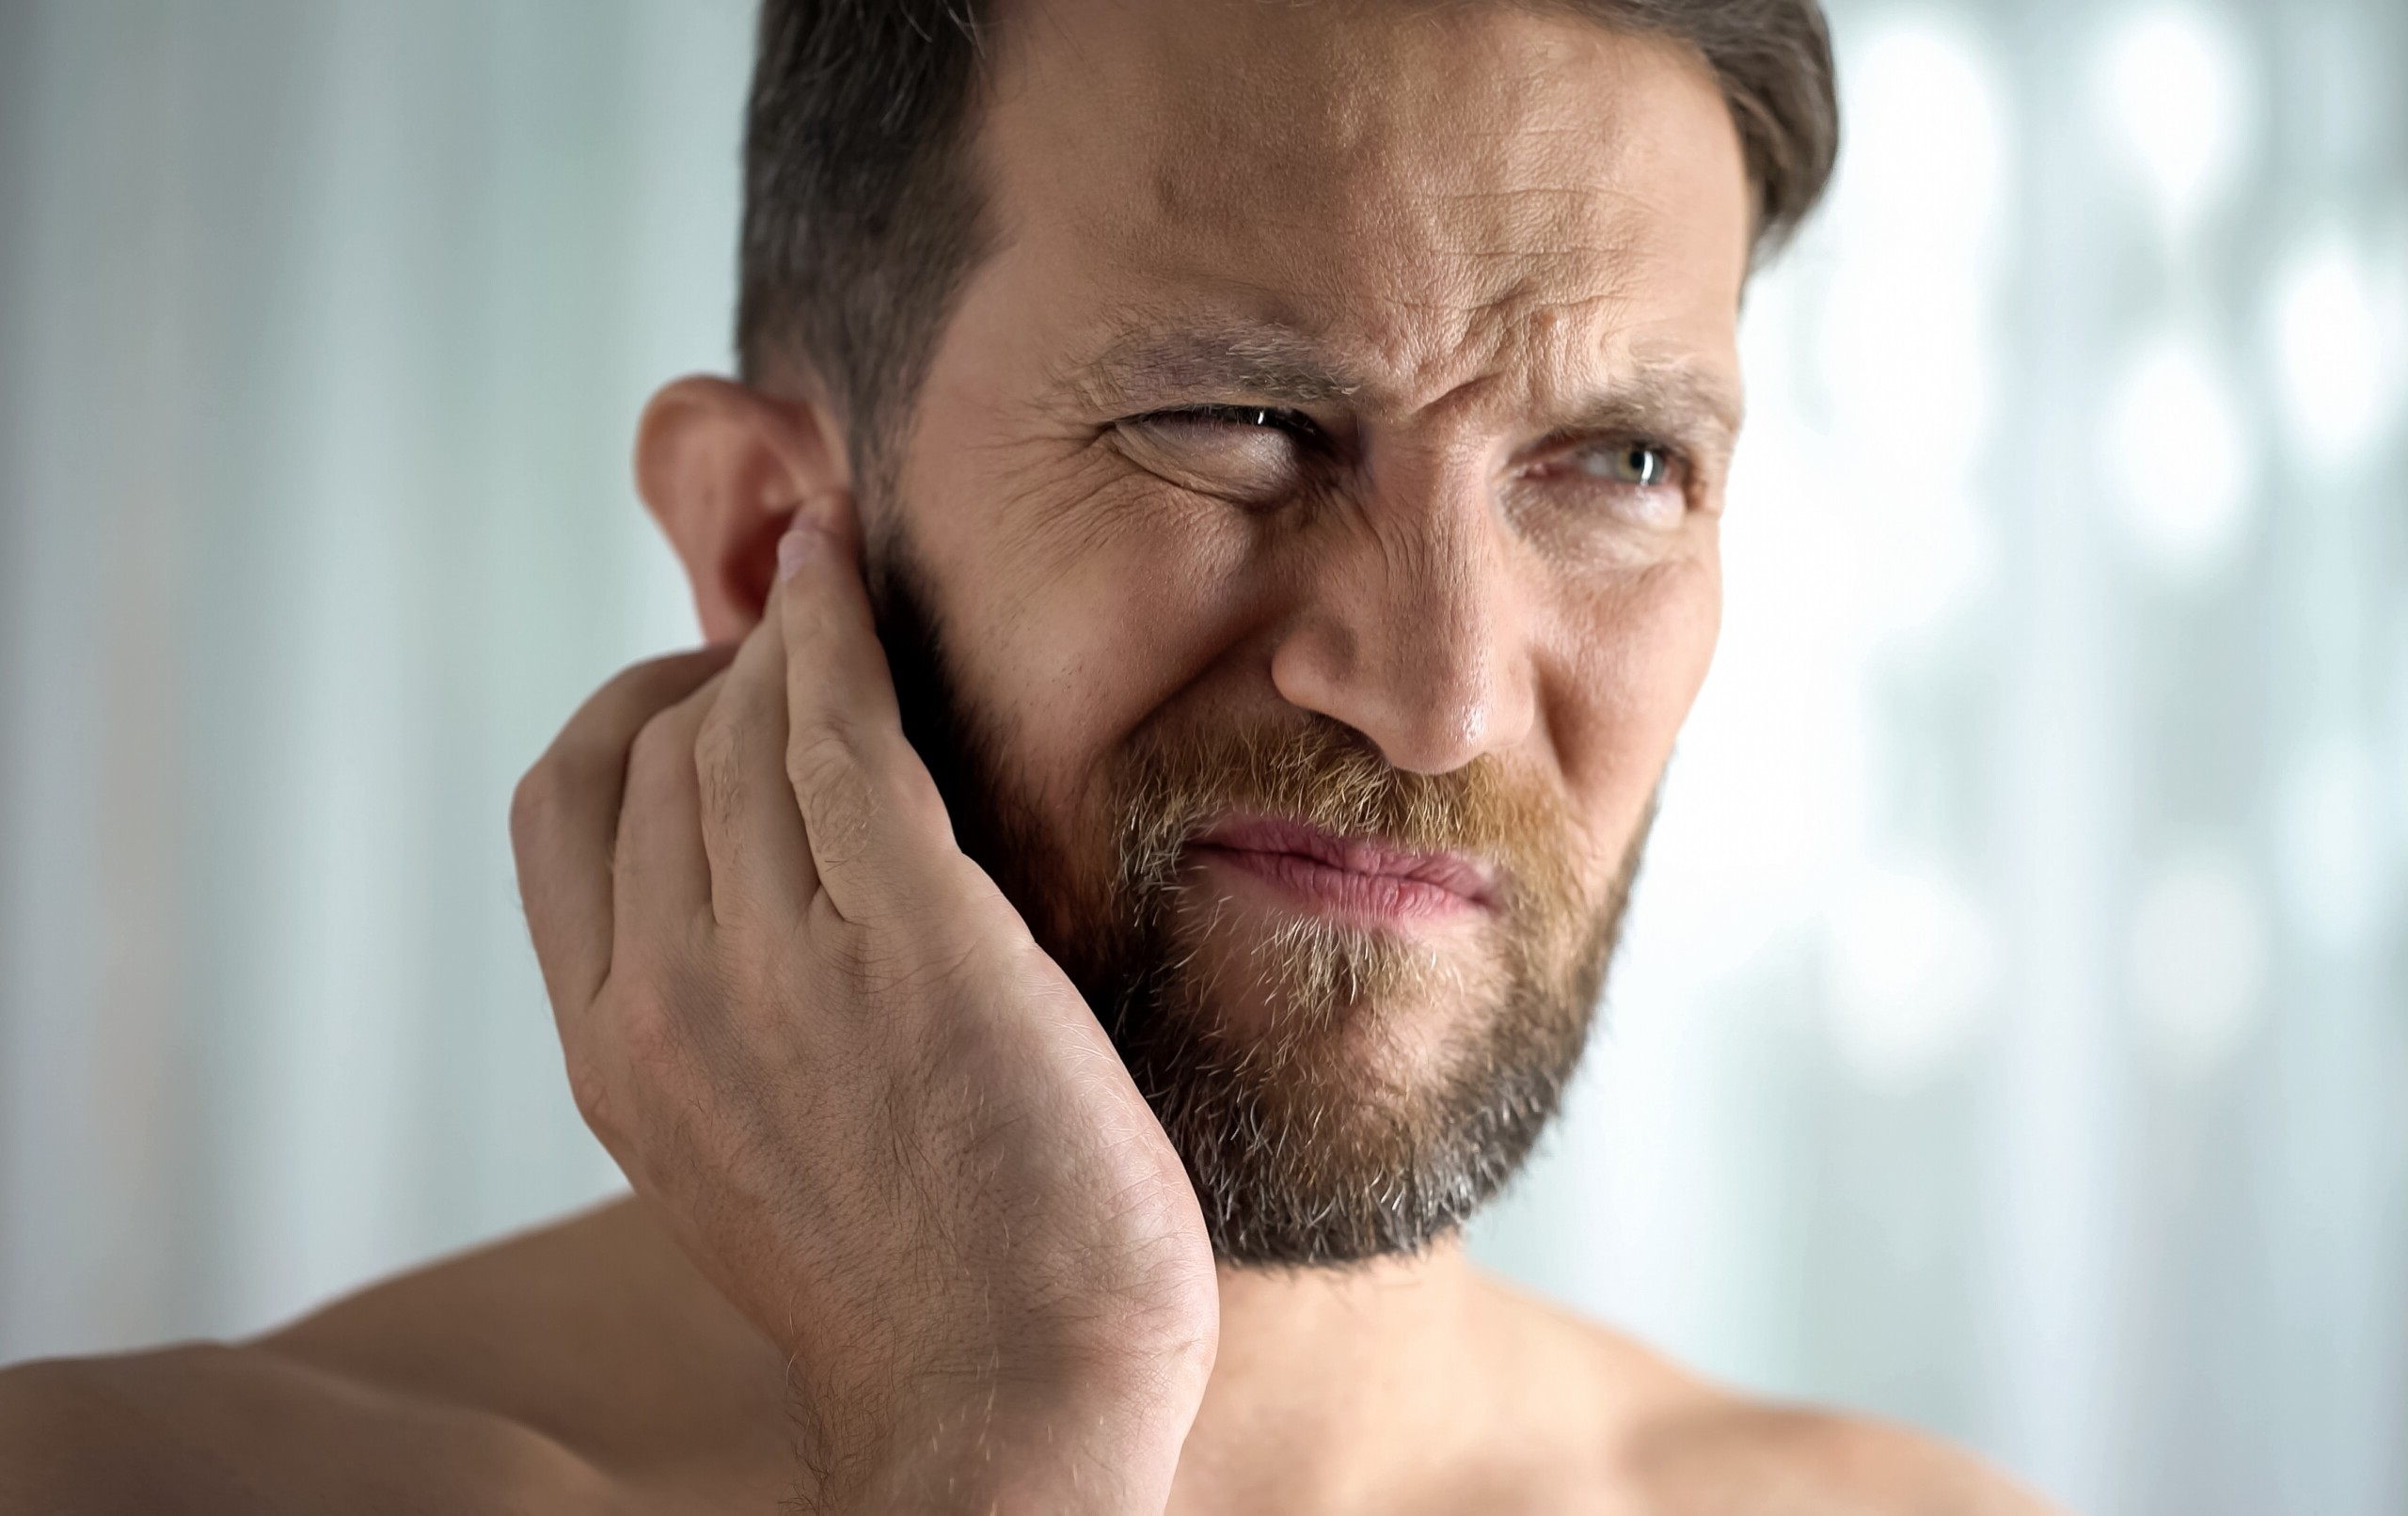 Can Tinnitus Be the Only Symptom of TMJ Disorder?